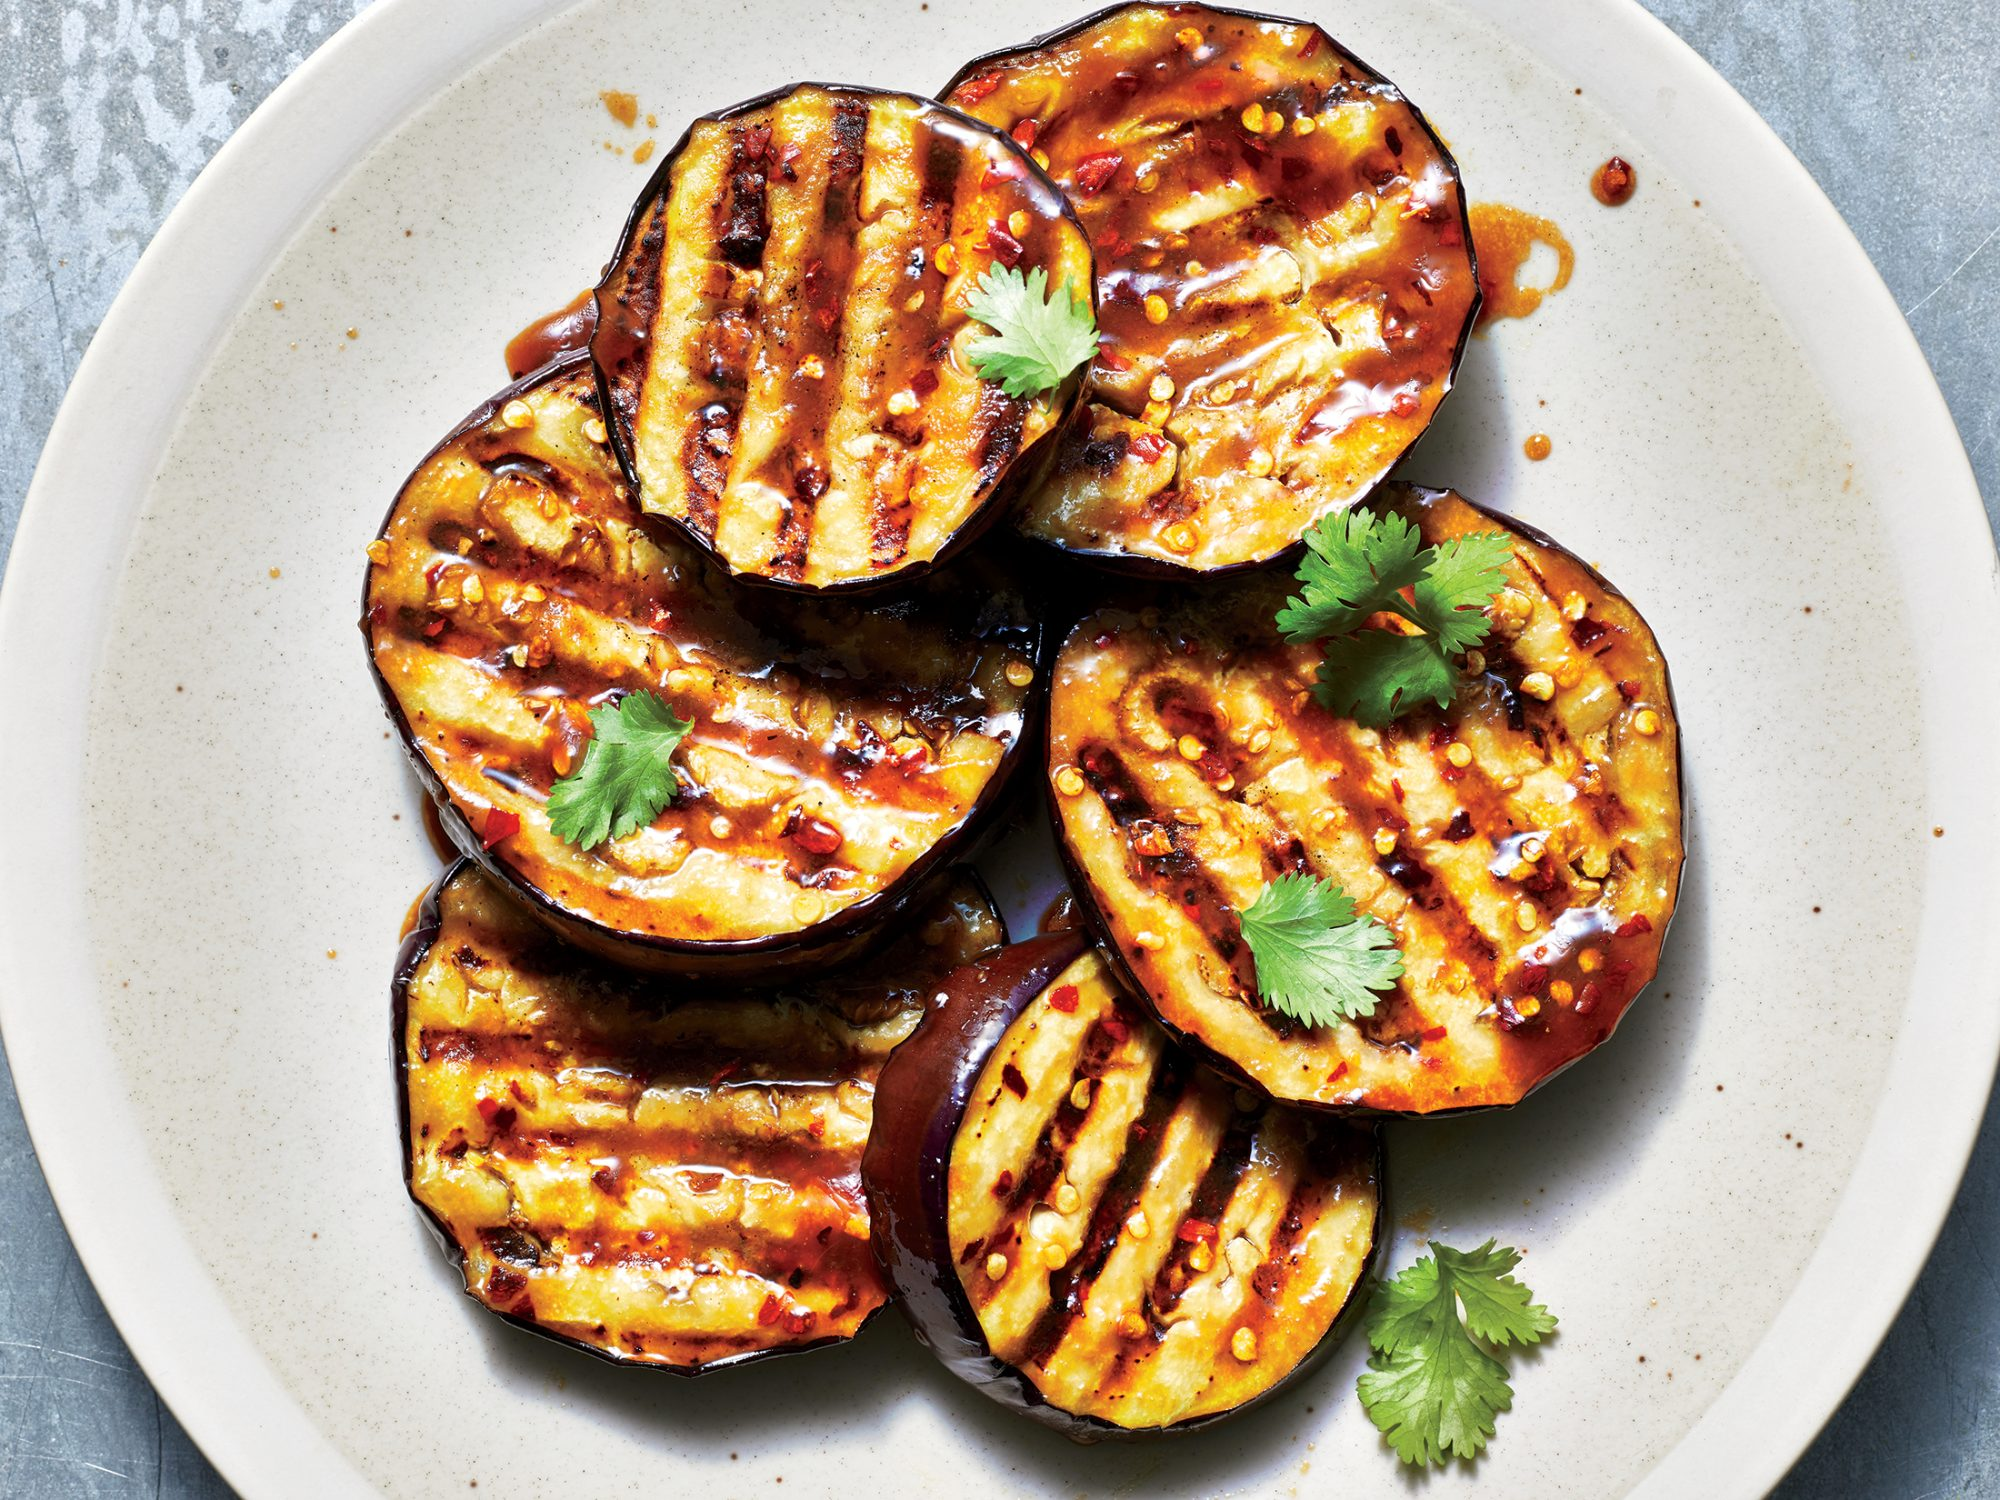 Miso-Glazed Eggplant Steaks